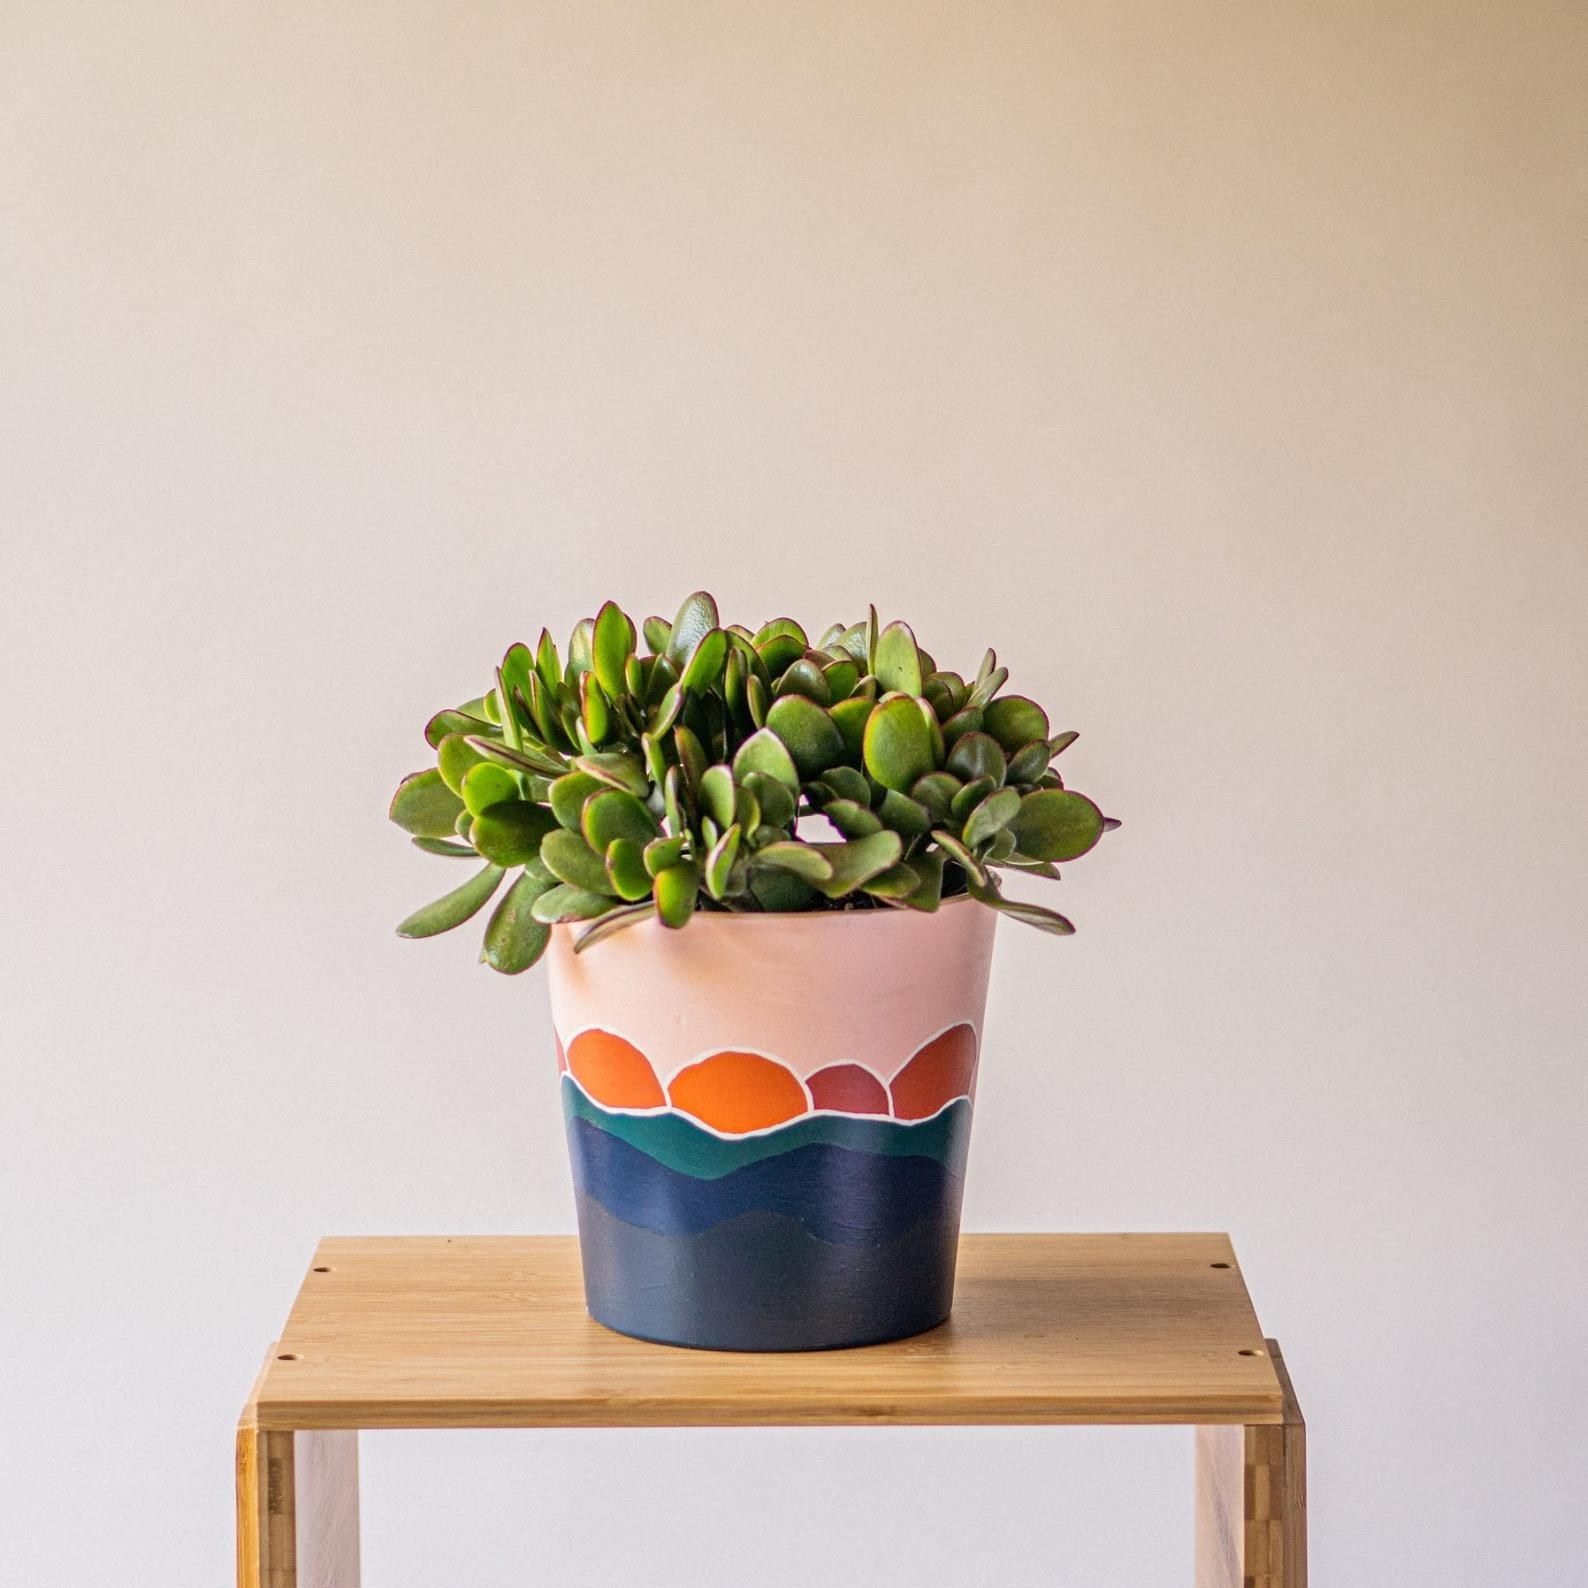 The pot with a sunset painting holding a succulent